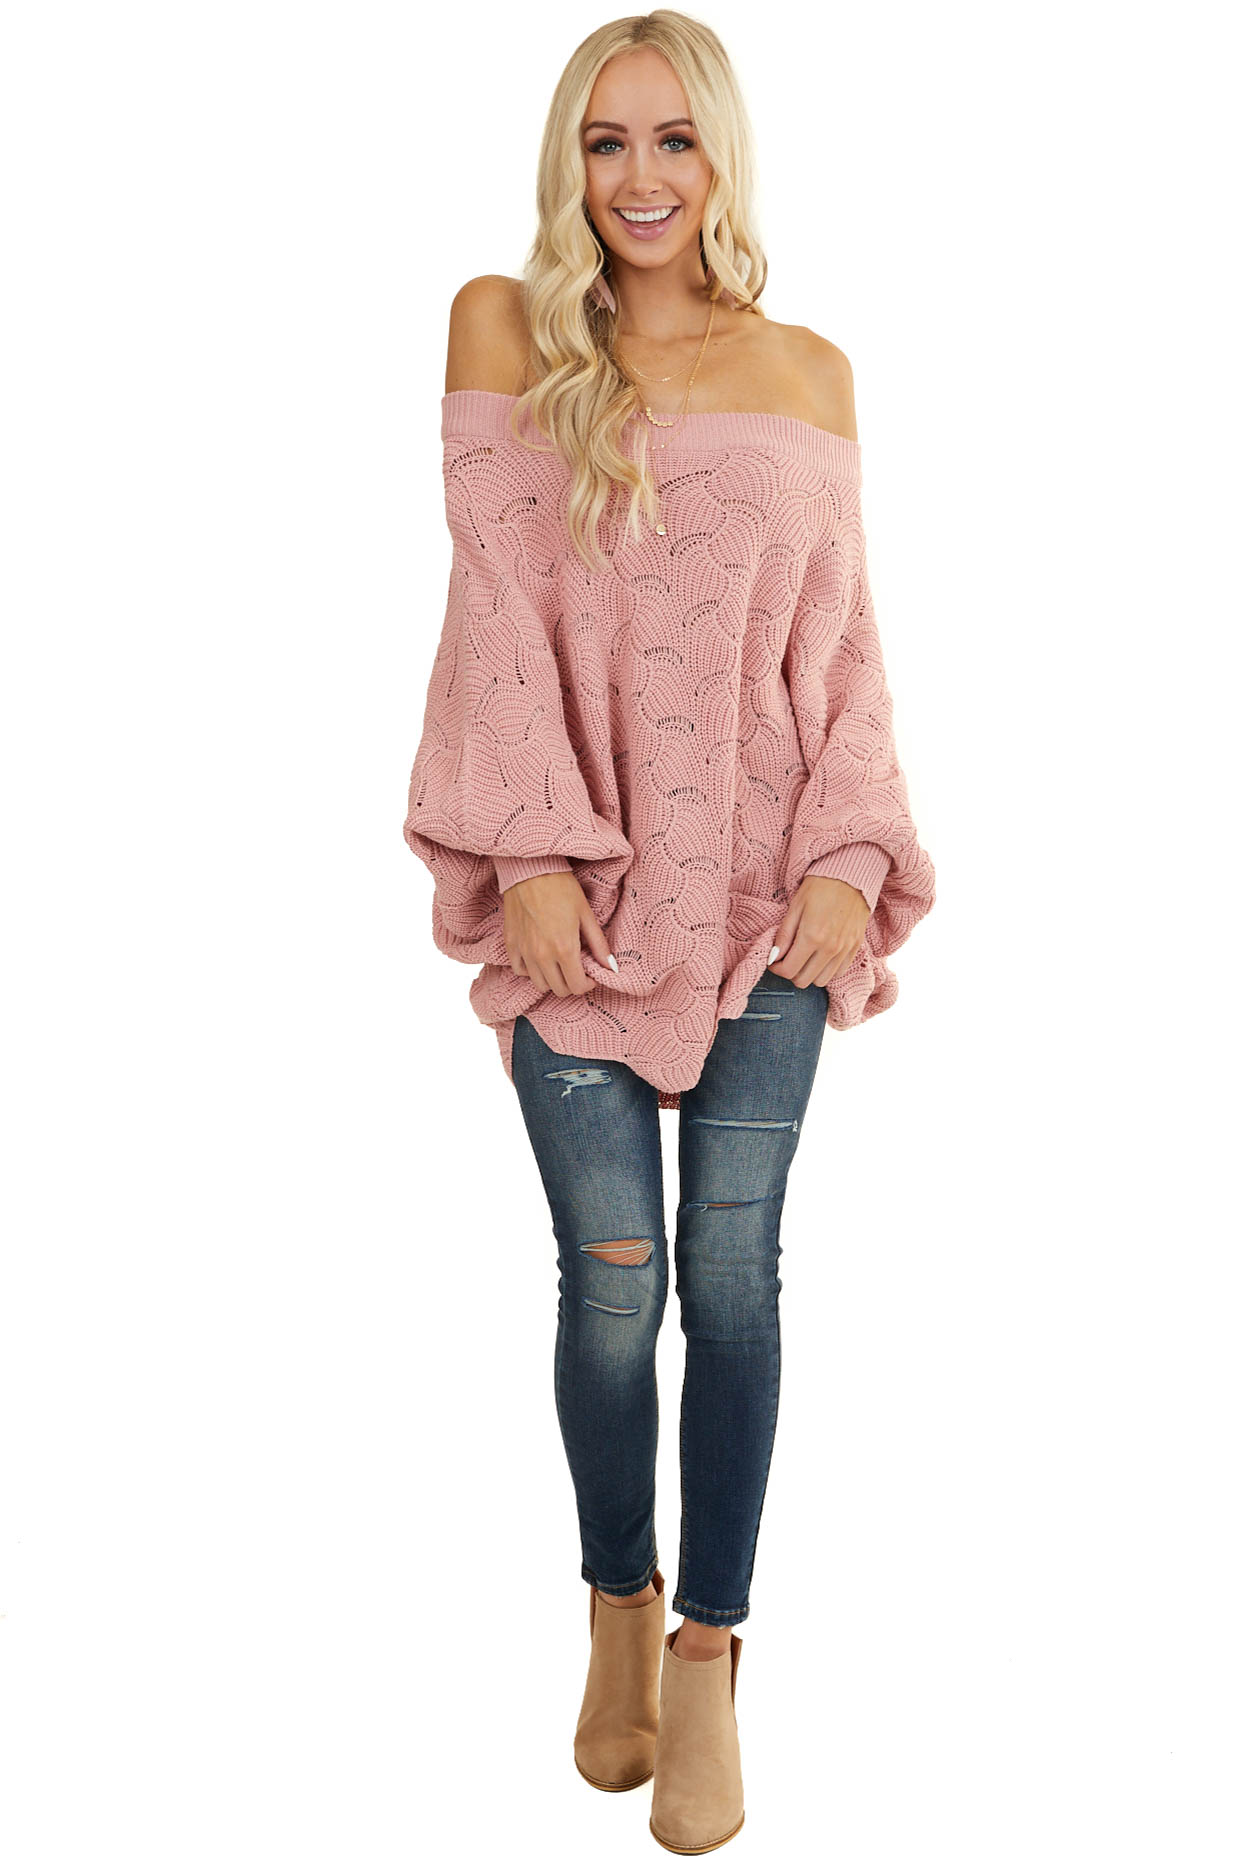 Dusty Blush Oversized Knit Sweater with Dolman Sleeves